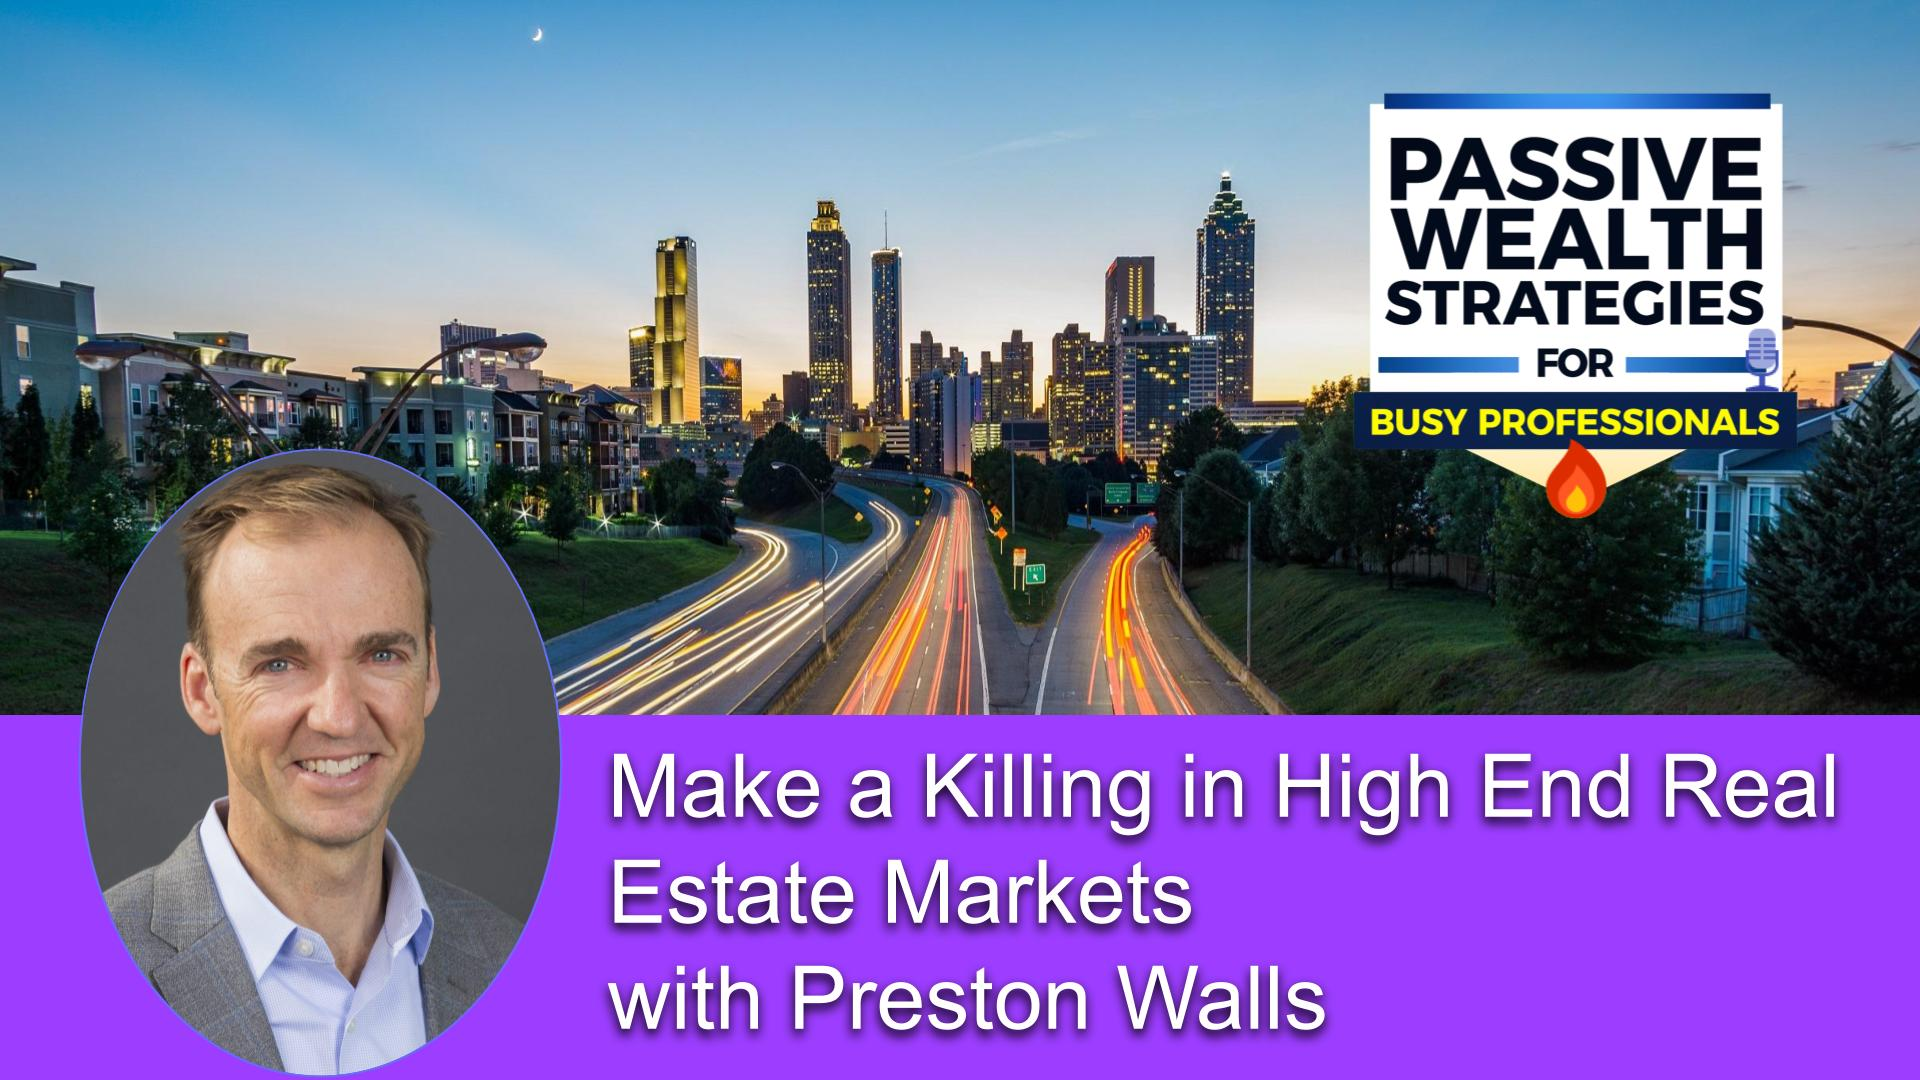 Make a Killing in High End Real Estate Markets with Preston Walls